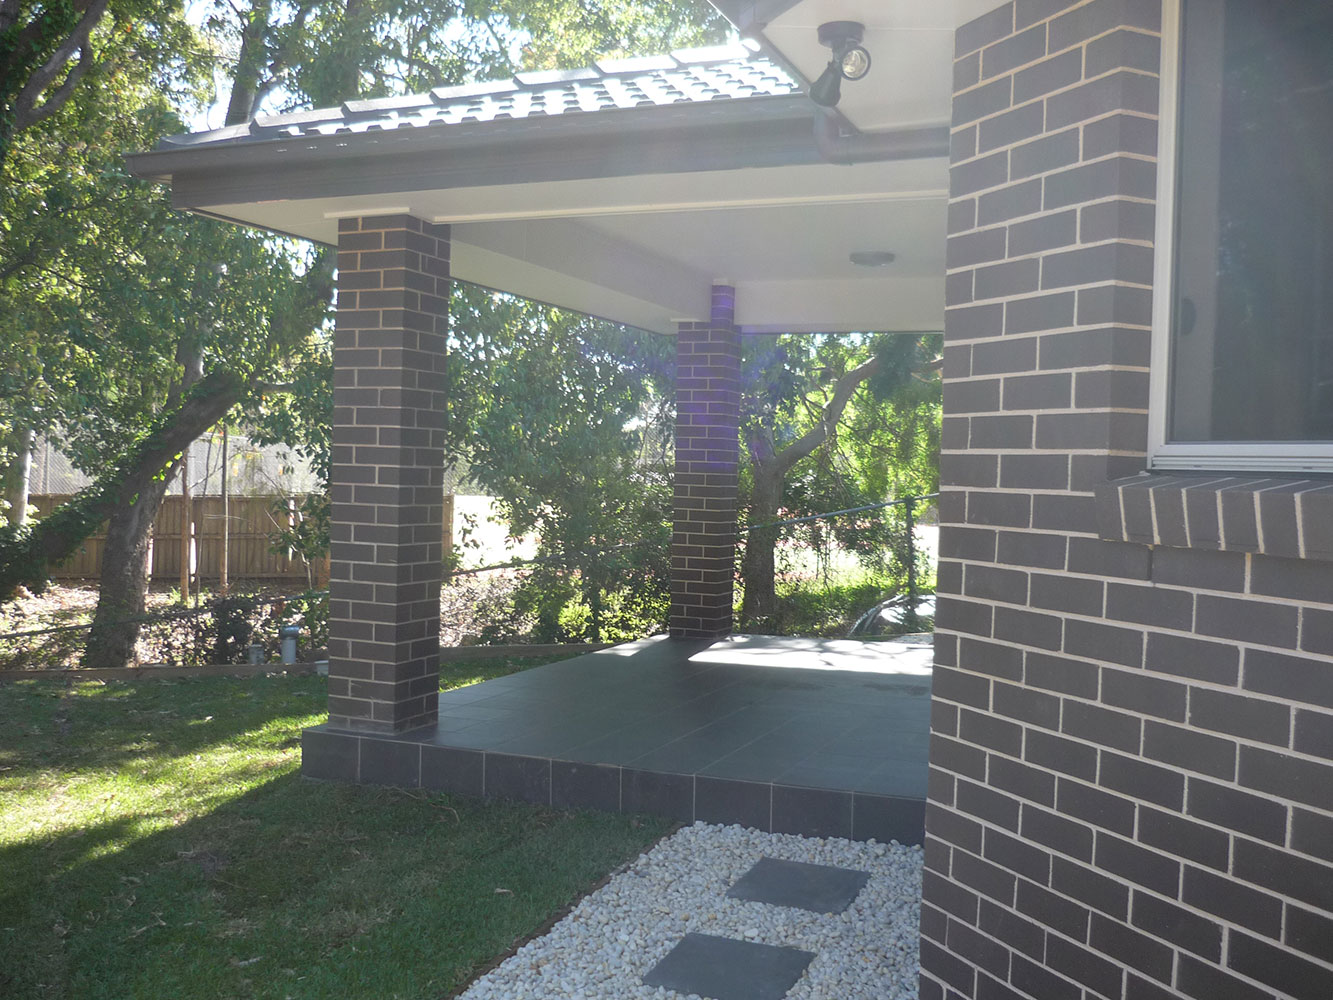 granny flat builders chatswood licensed professionals